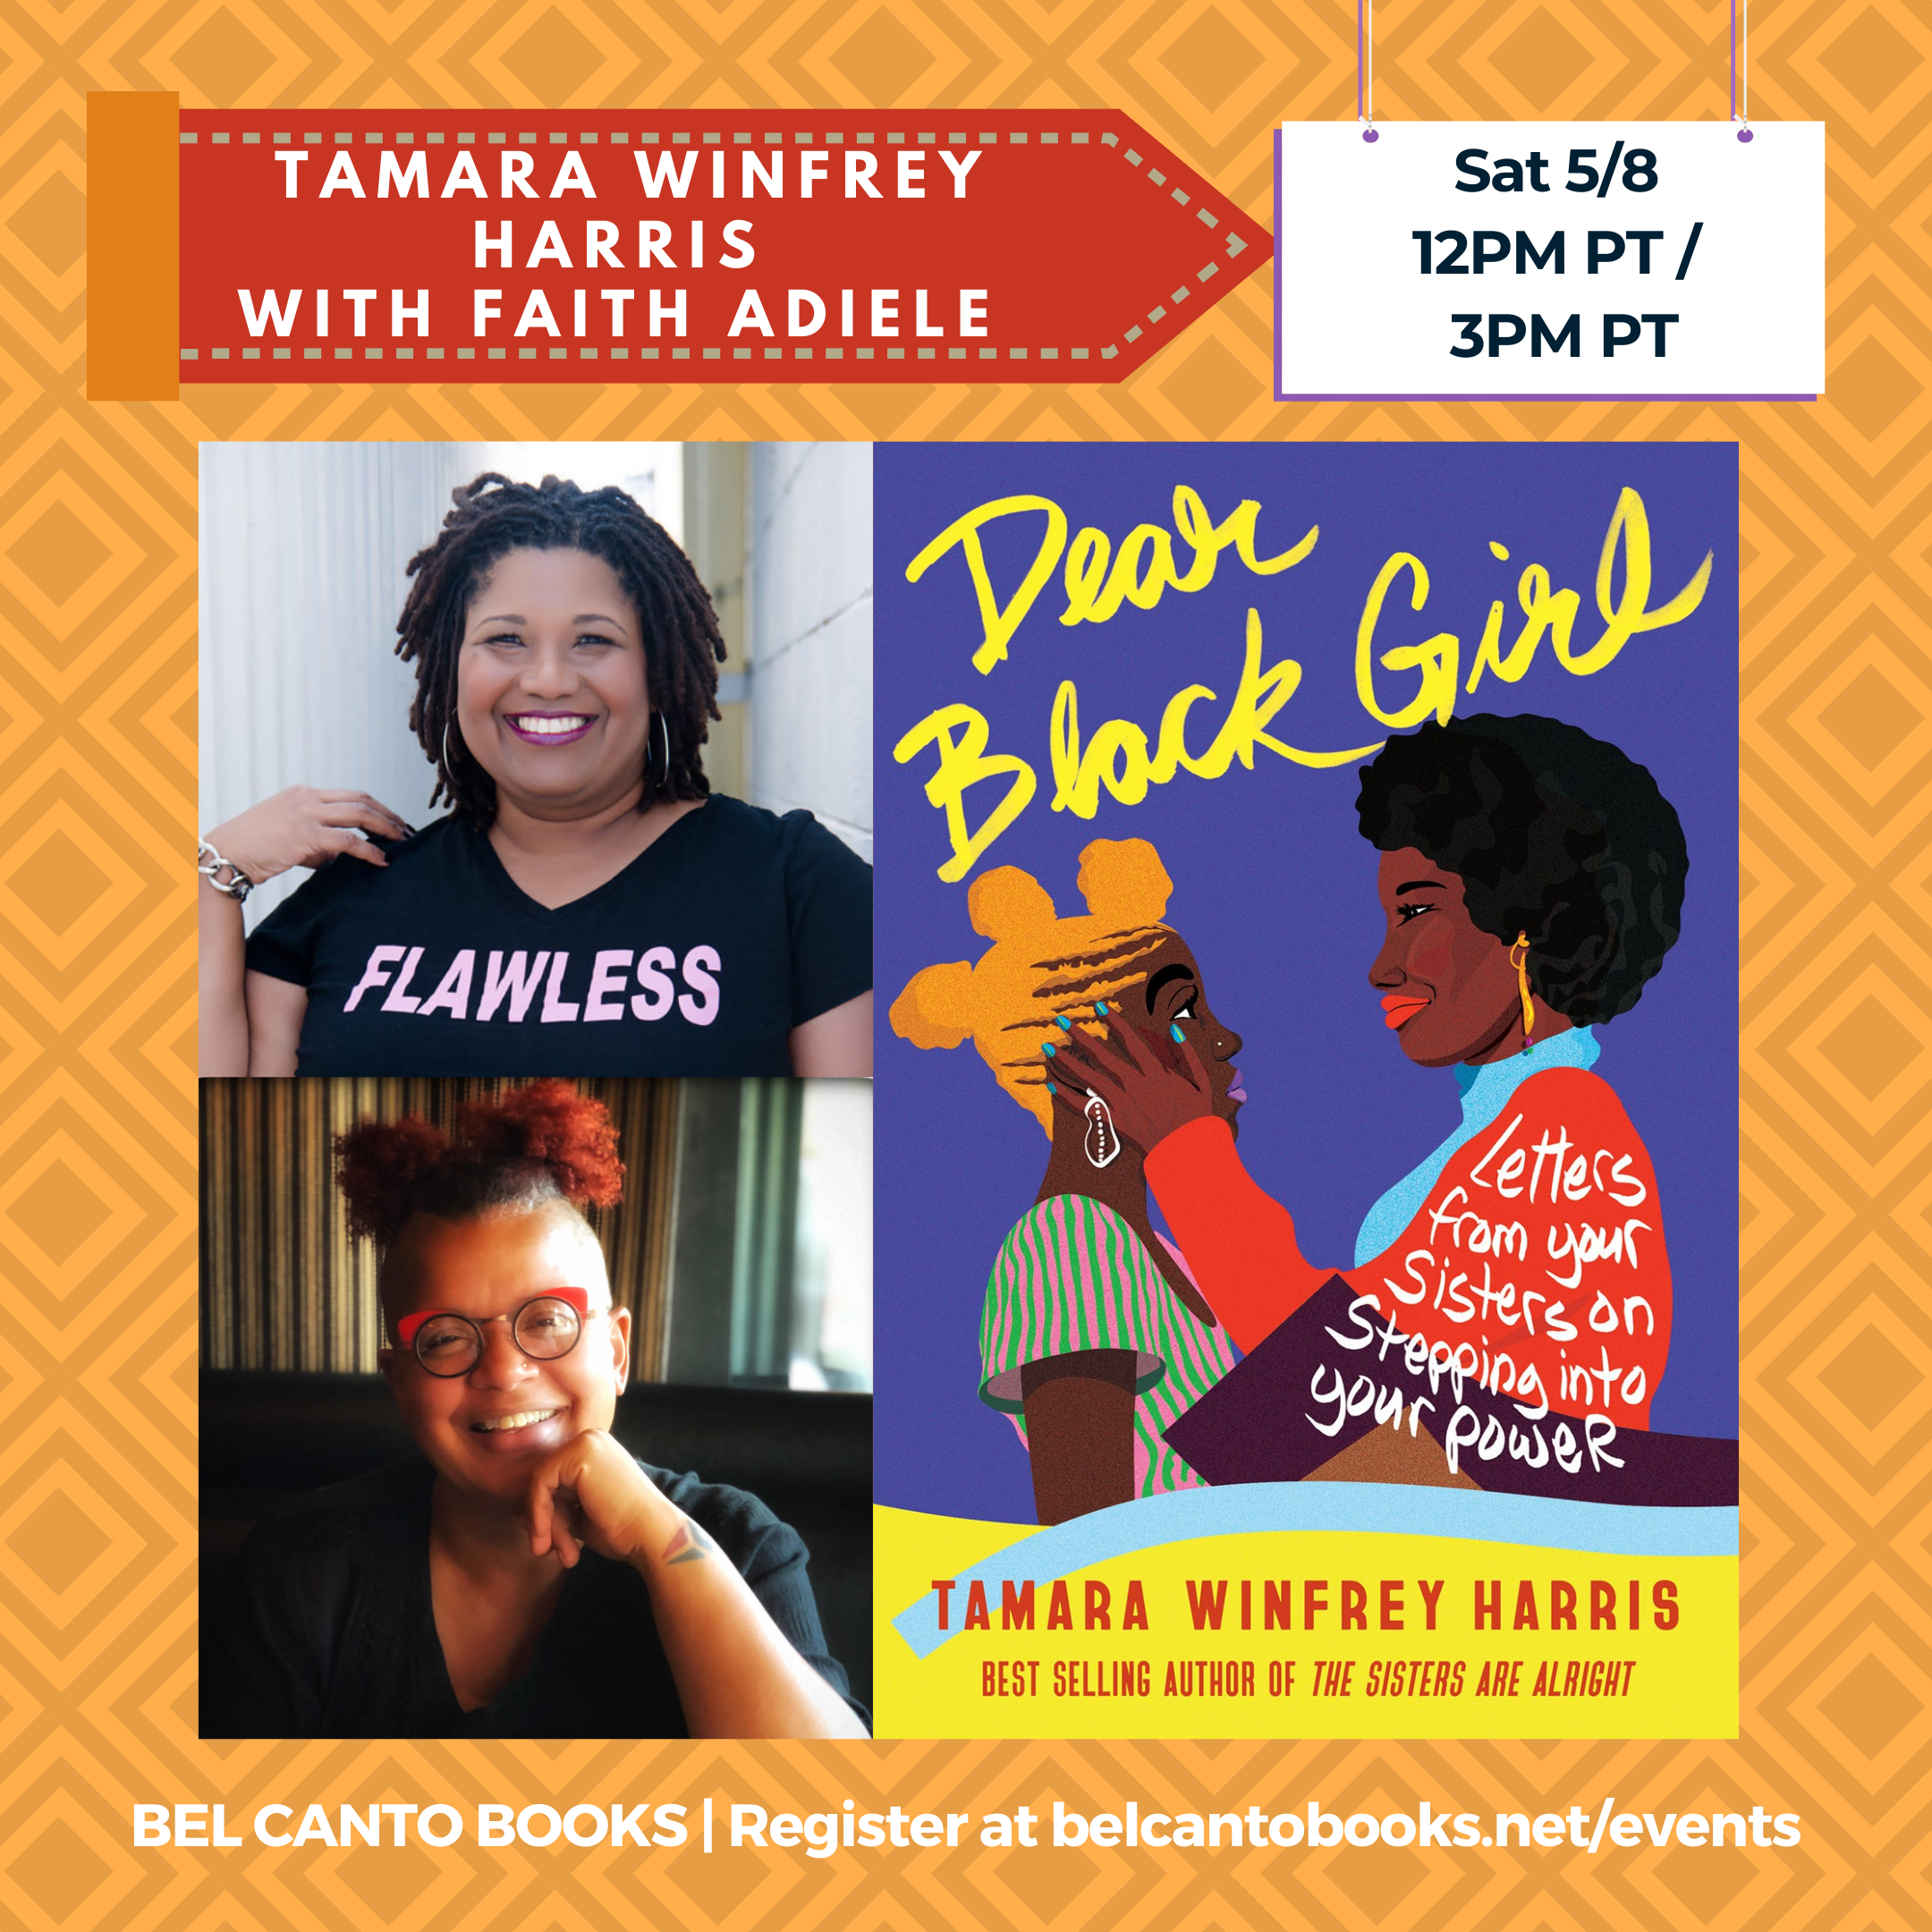 Celebrate Dear Black Girl w/me & its editor on May 8